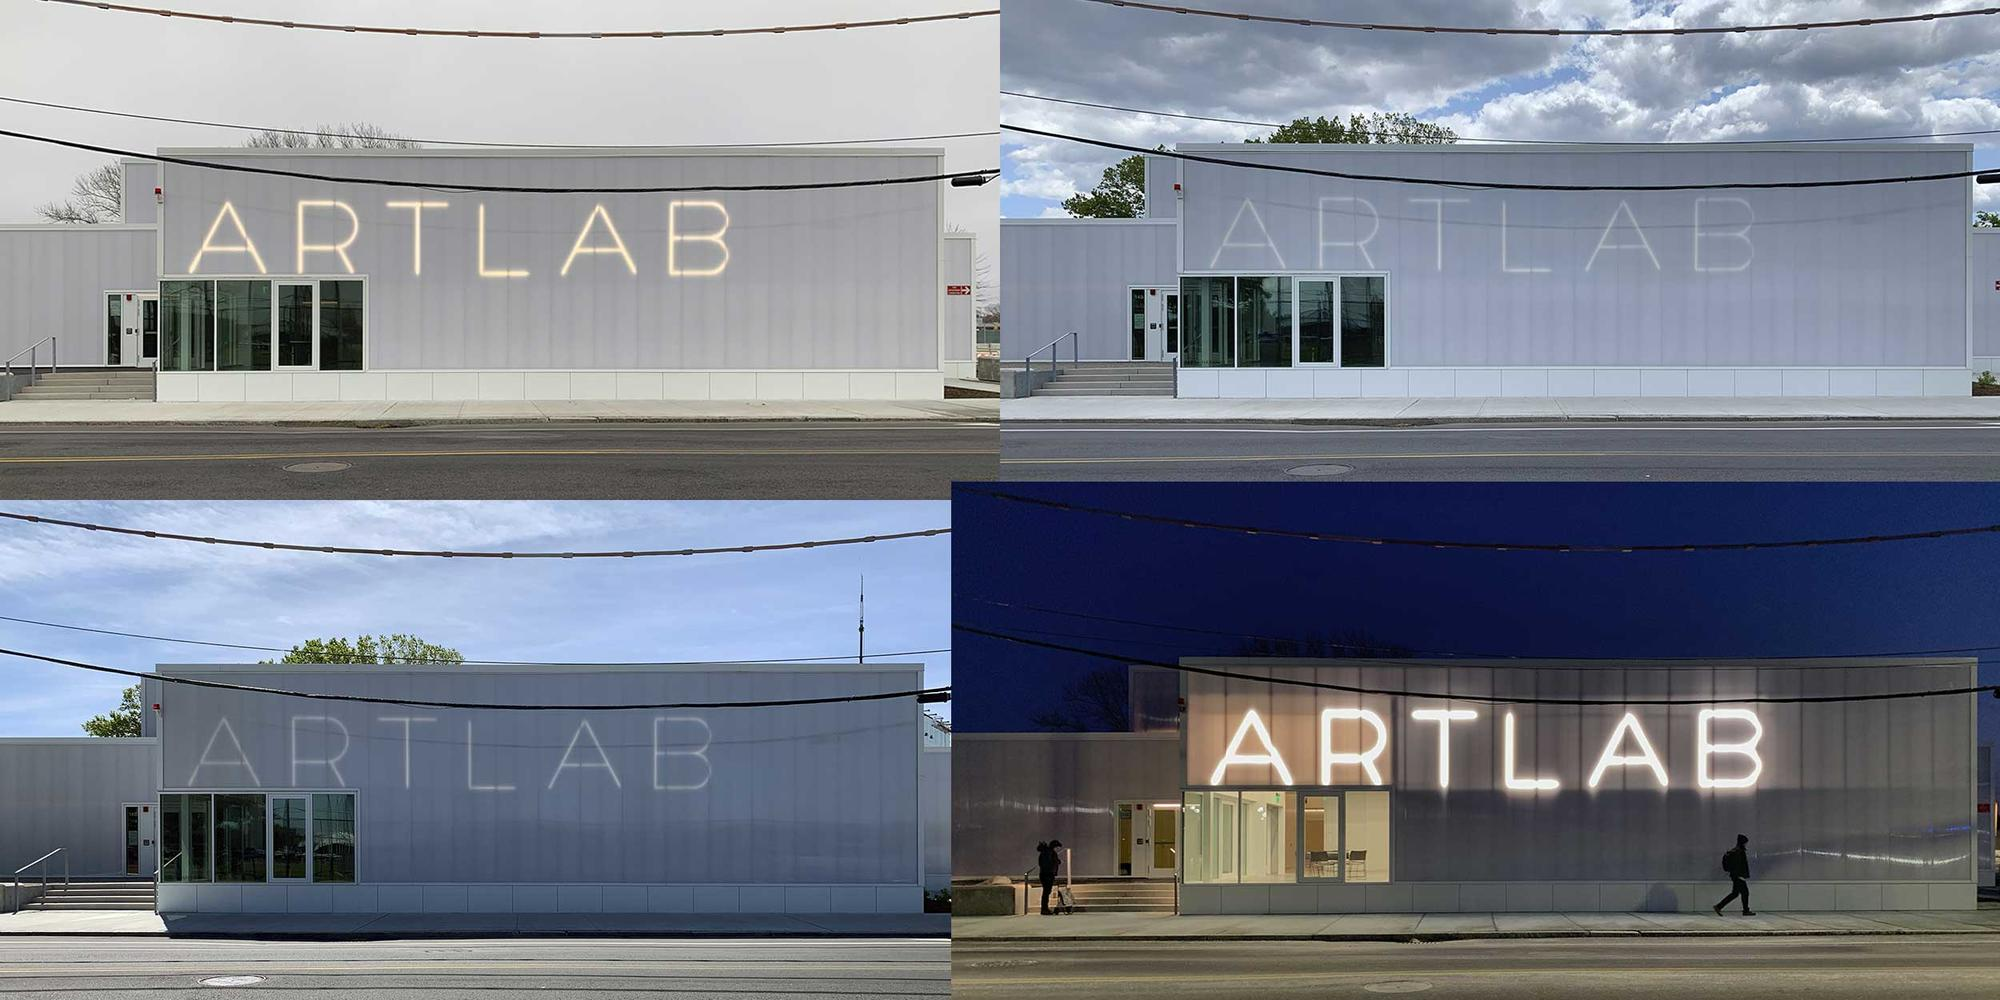 Grid of the facade of the ArtLab Building